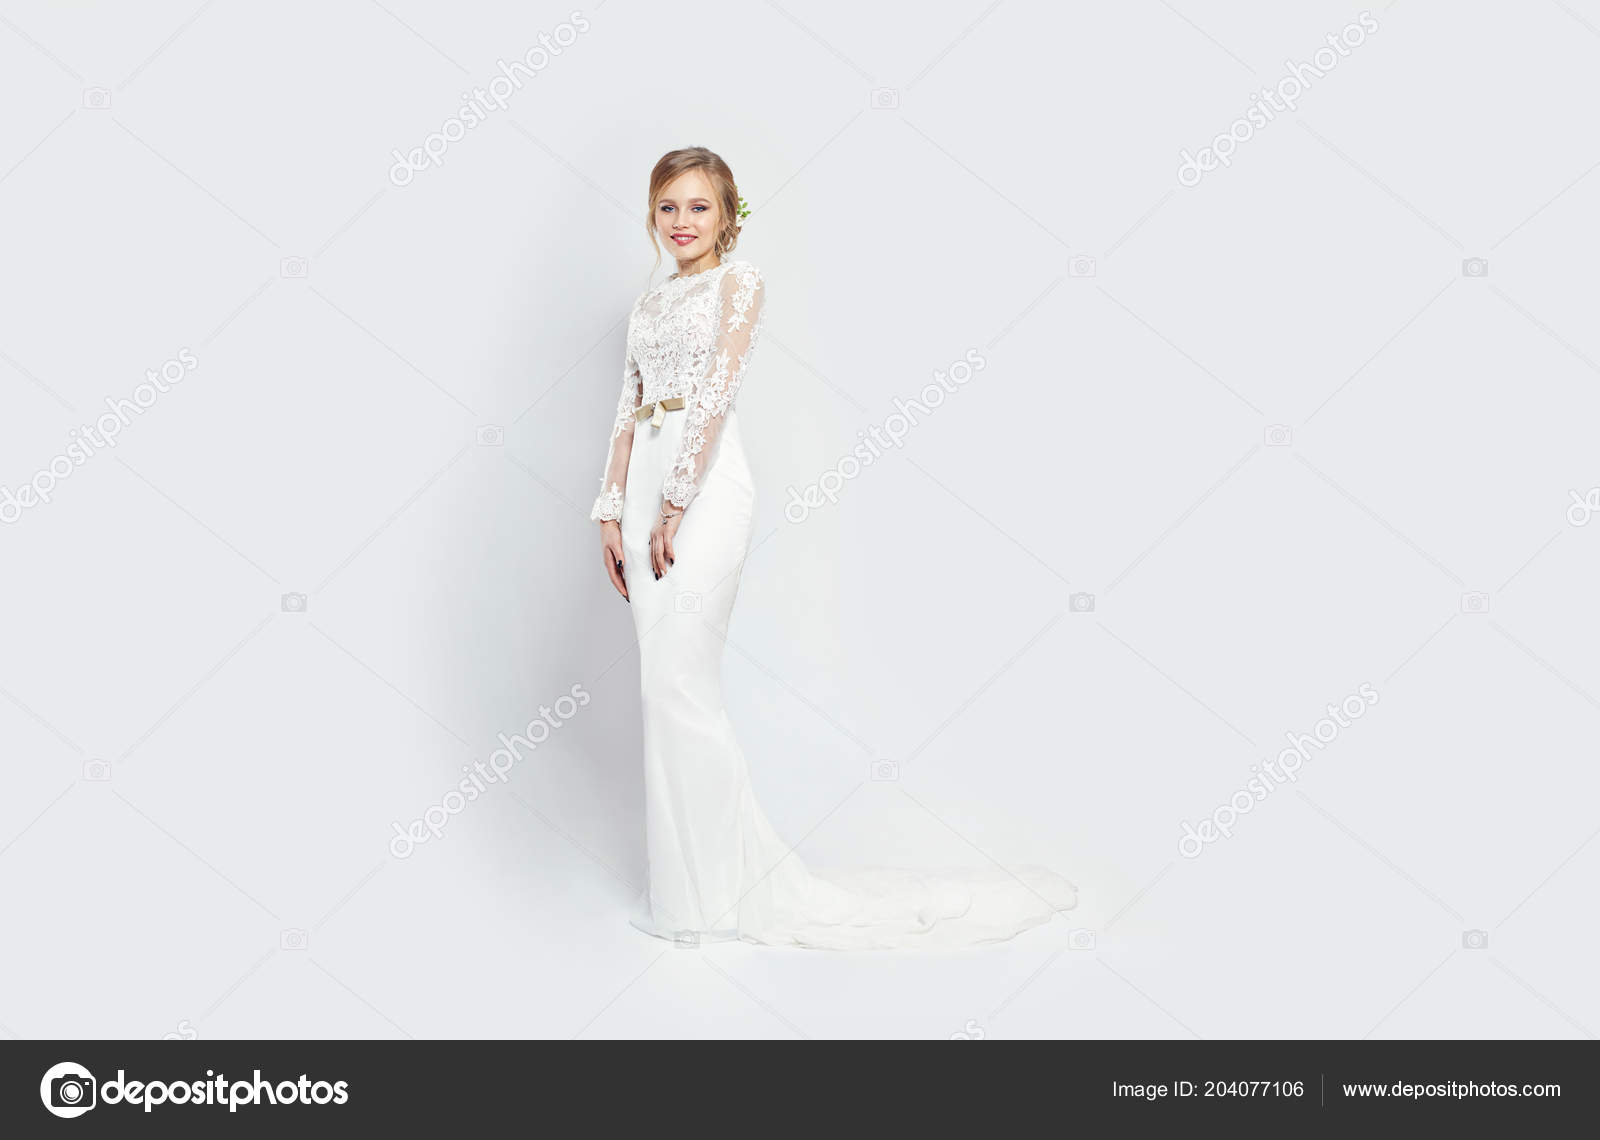 Bride woman long white wedding dress white background luxurious bride woman in long white wedding dress on a white background luxurious dress in a woman body girl is preparing to marry perfect figure and dress women junglespirit Images